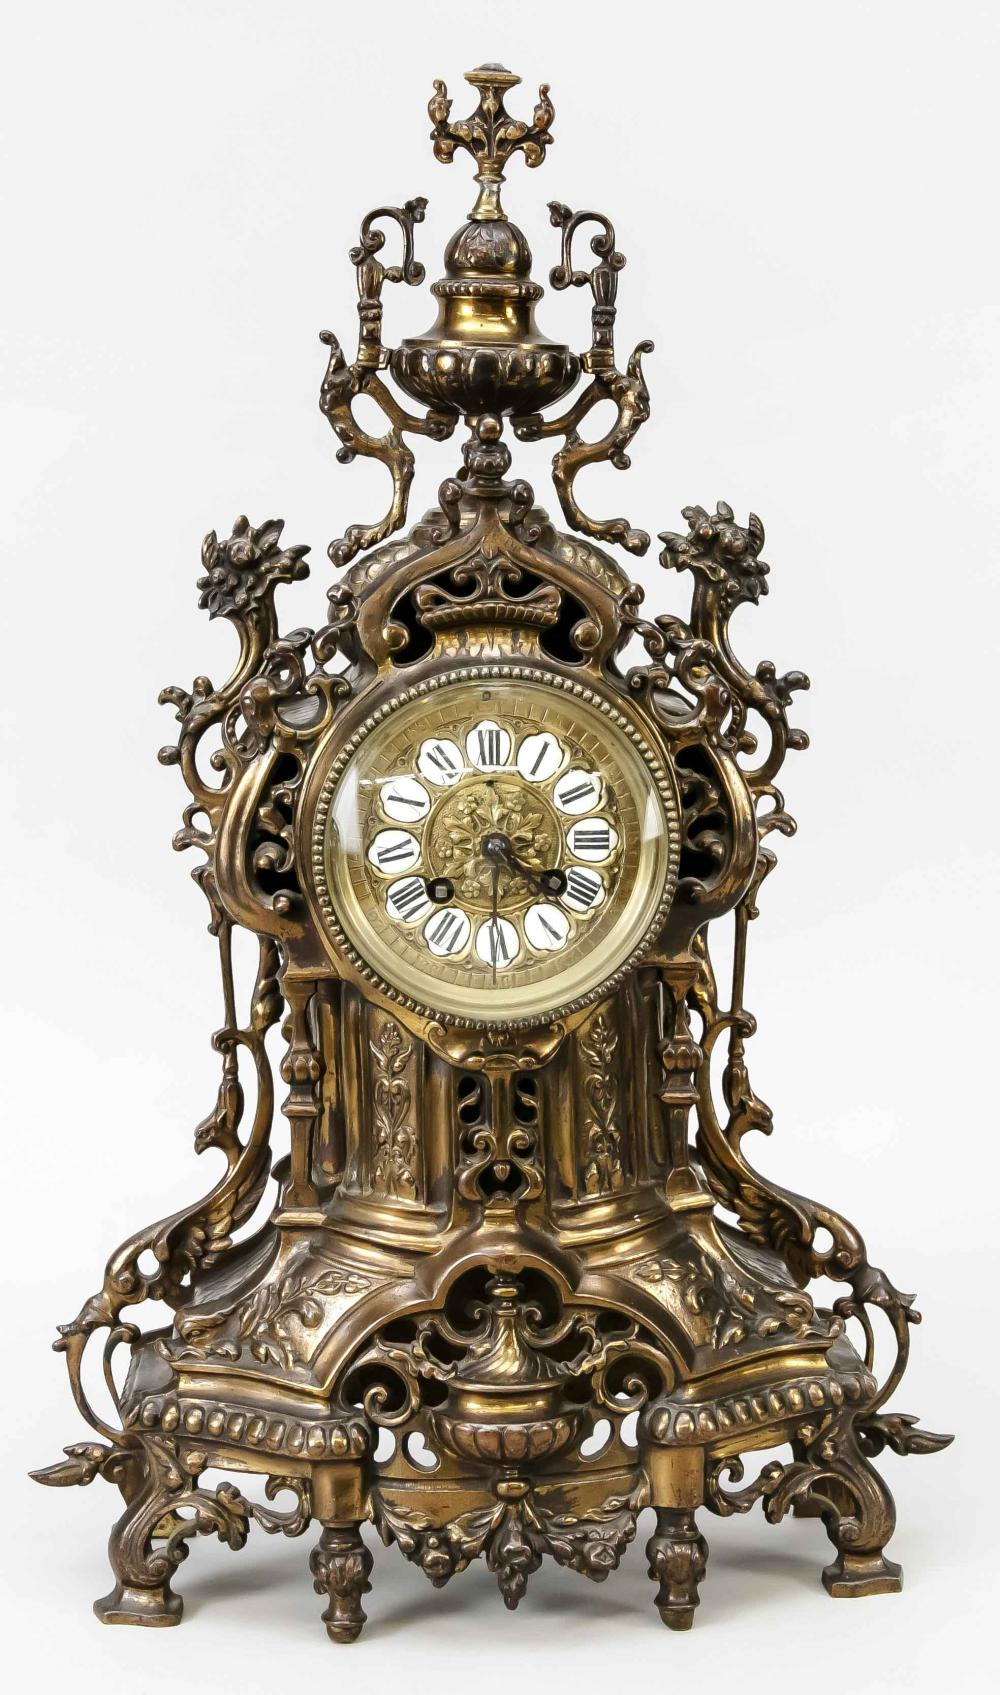 French. Historicism clock, 2nd